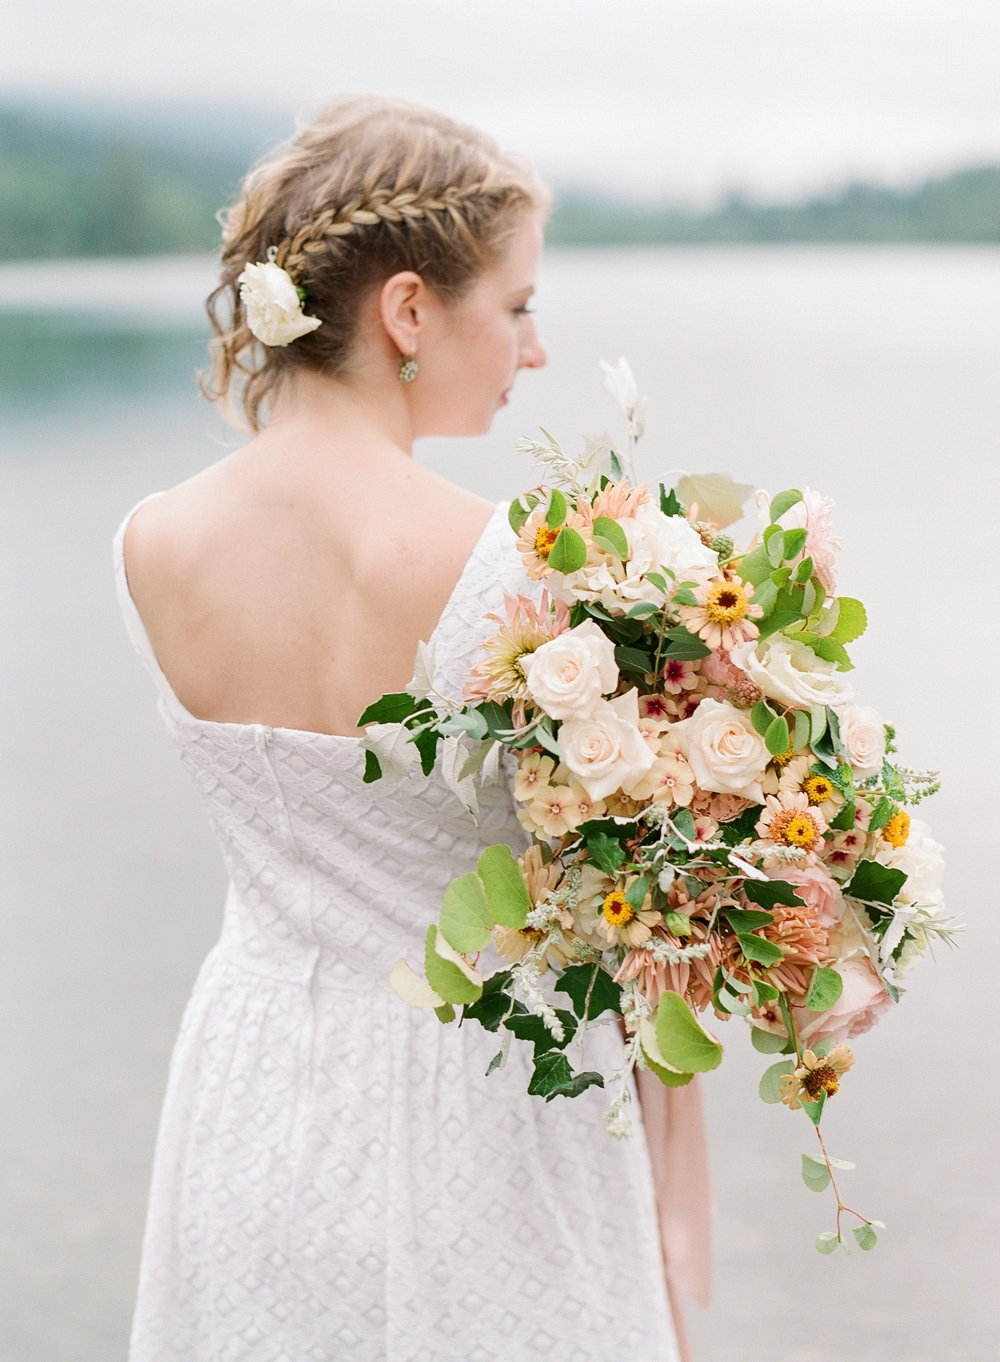 bride in white eyelet dress holding white pink yellow and green bouquet